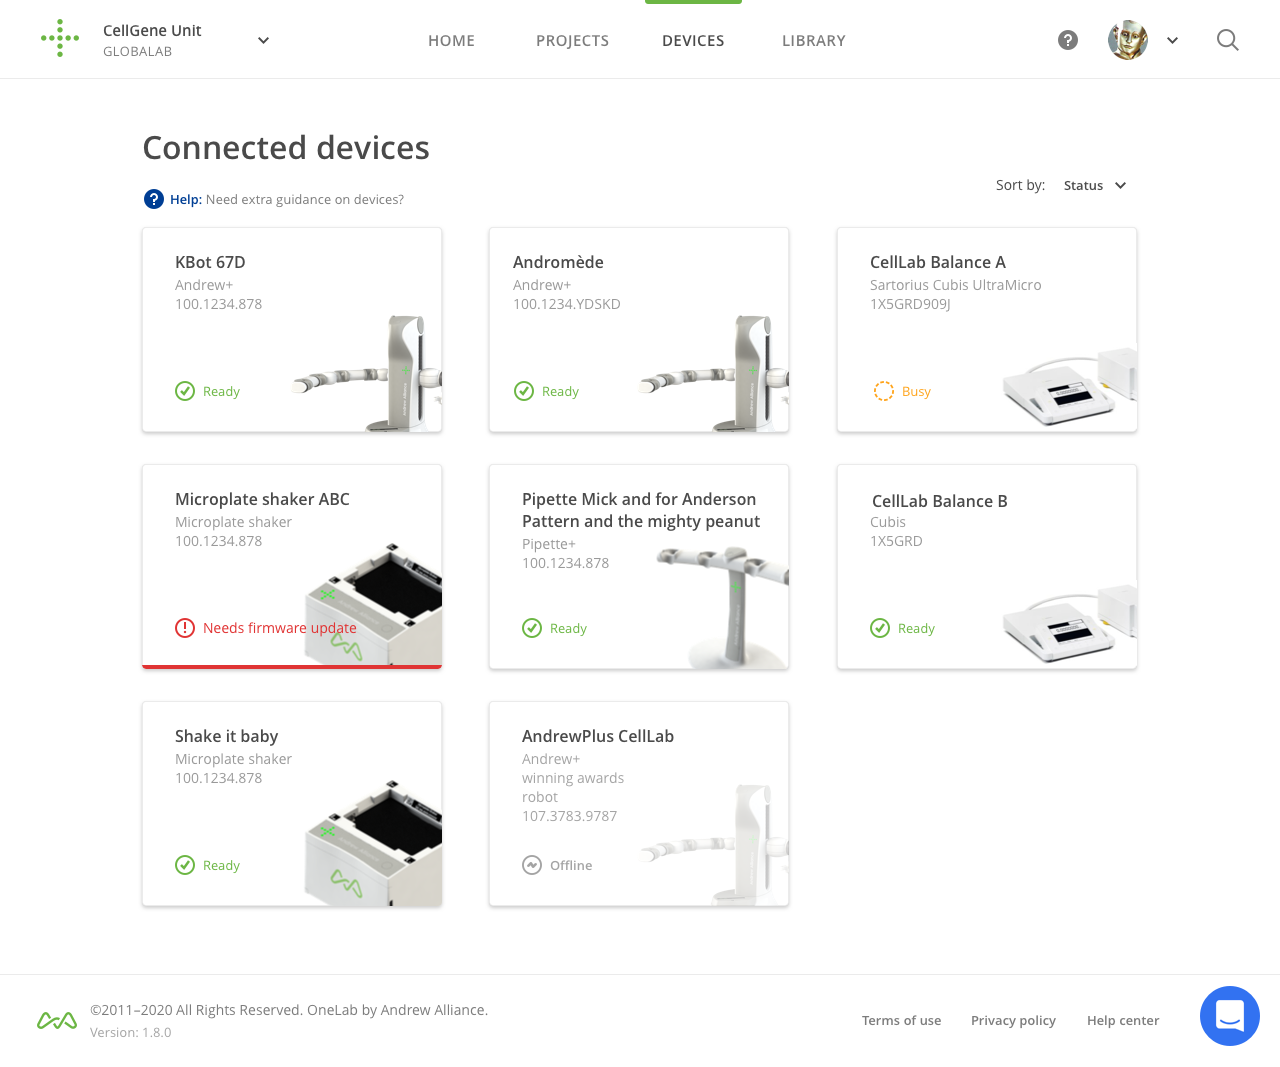 OneLab connected devices fleet management